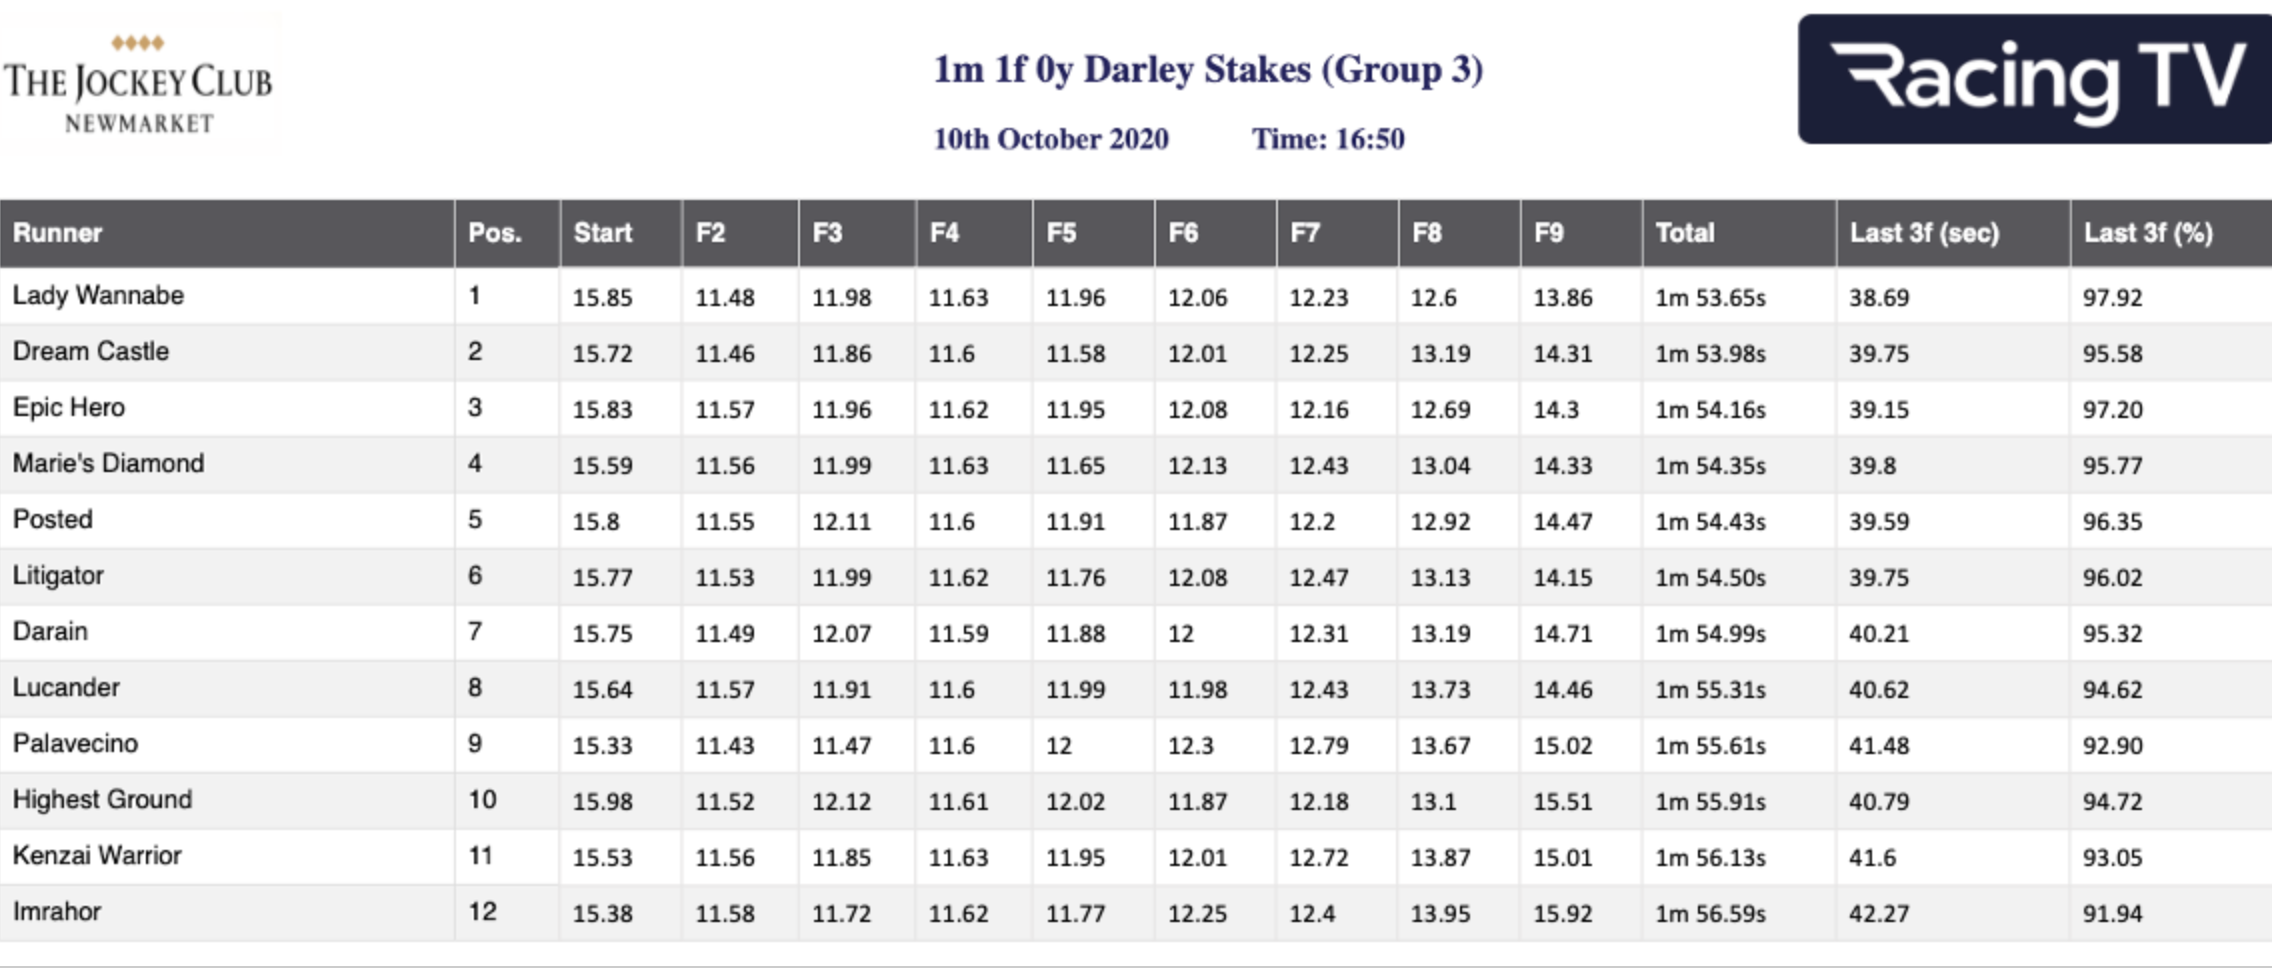 Darley Stakes - Sectional Times